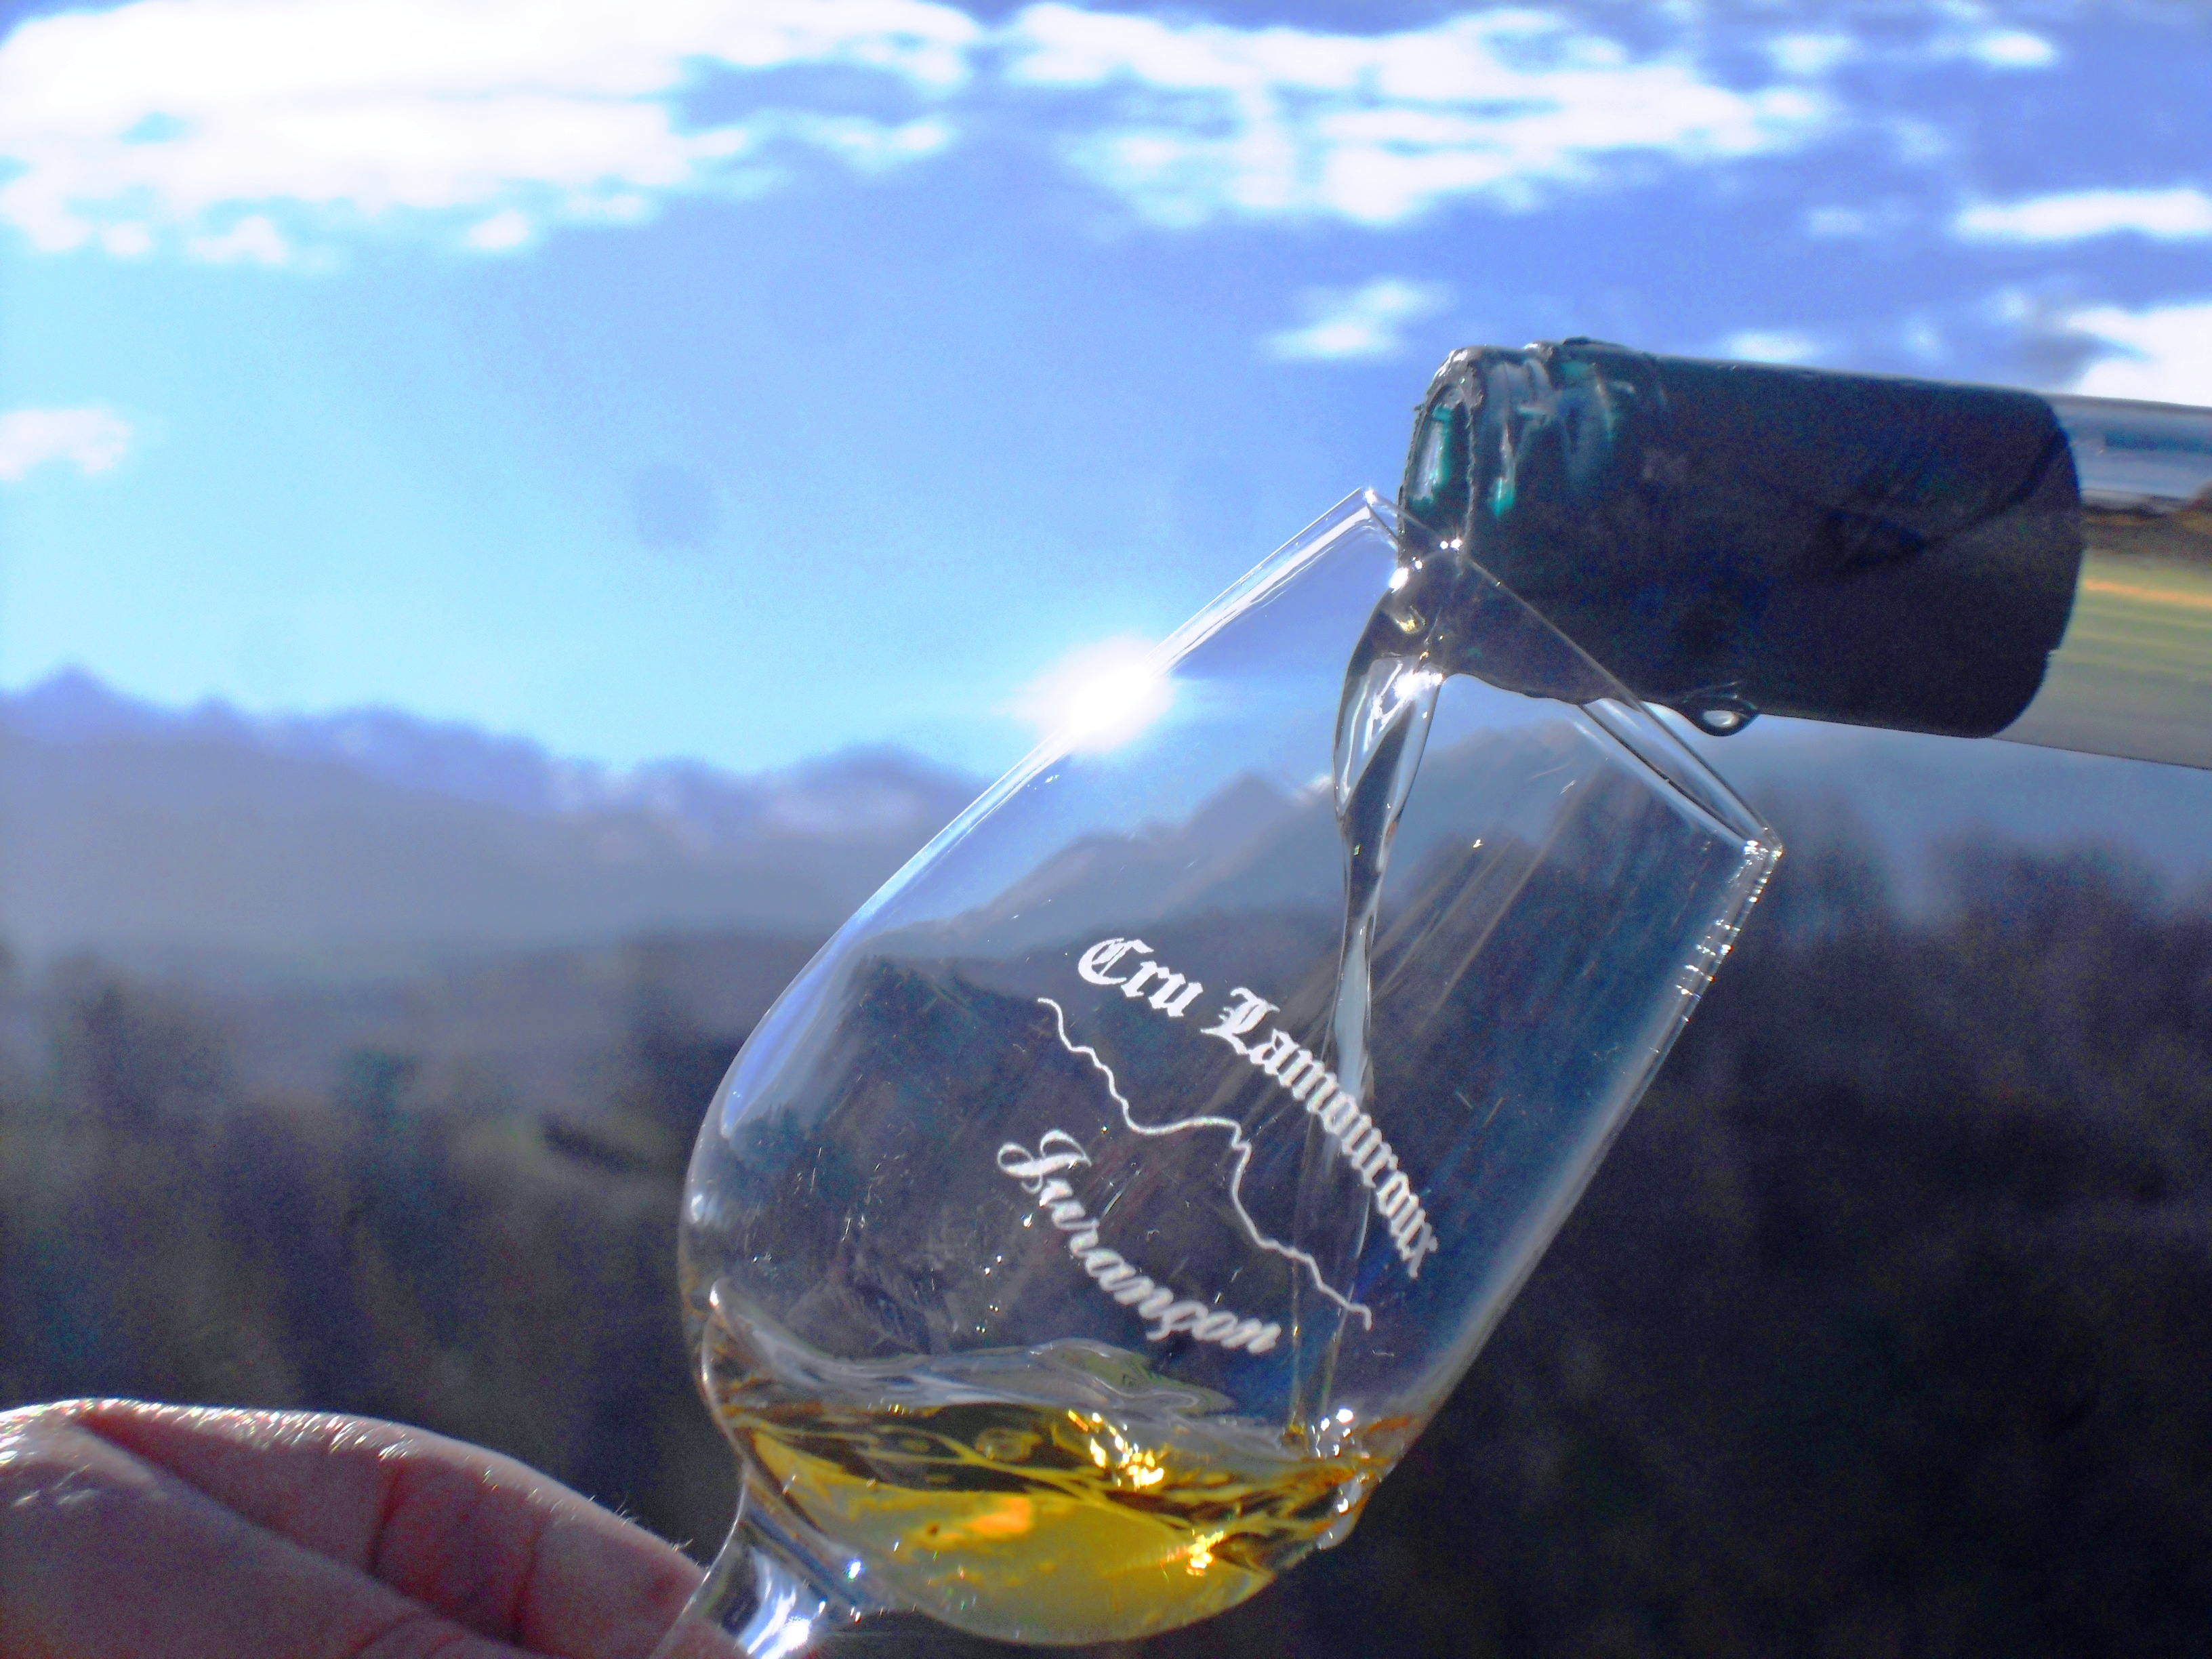 A glass of Cru Lamouroux full of sunlight – Jurançon